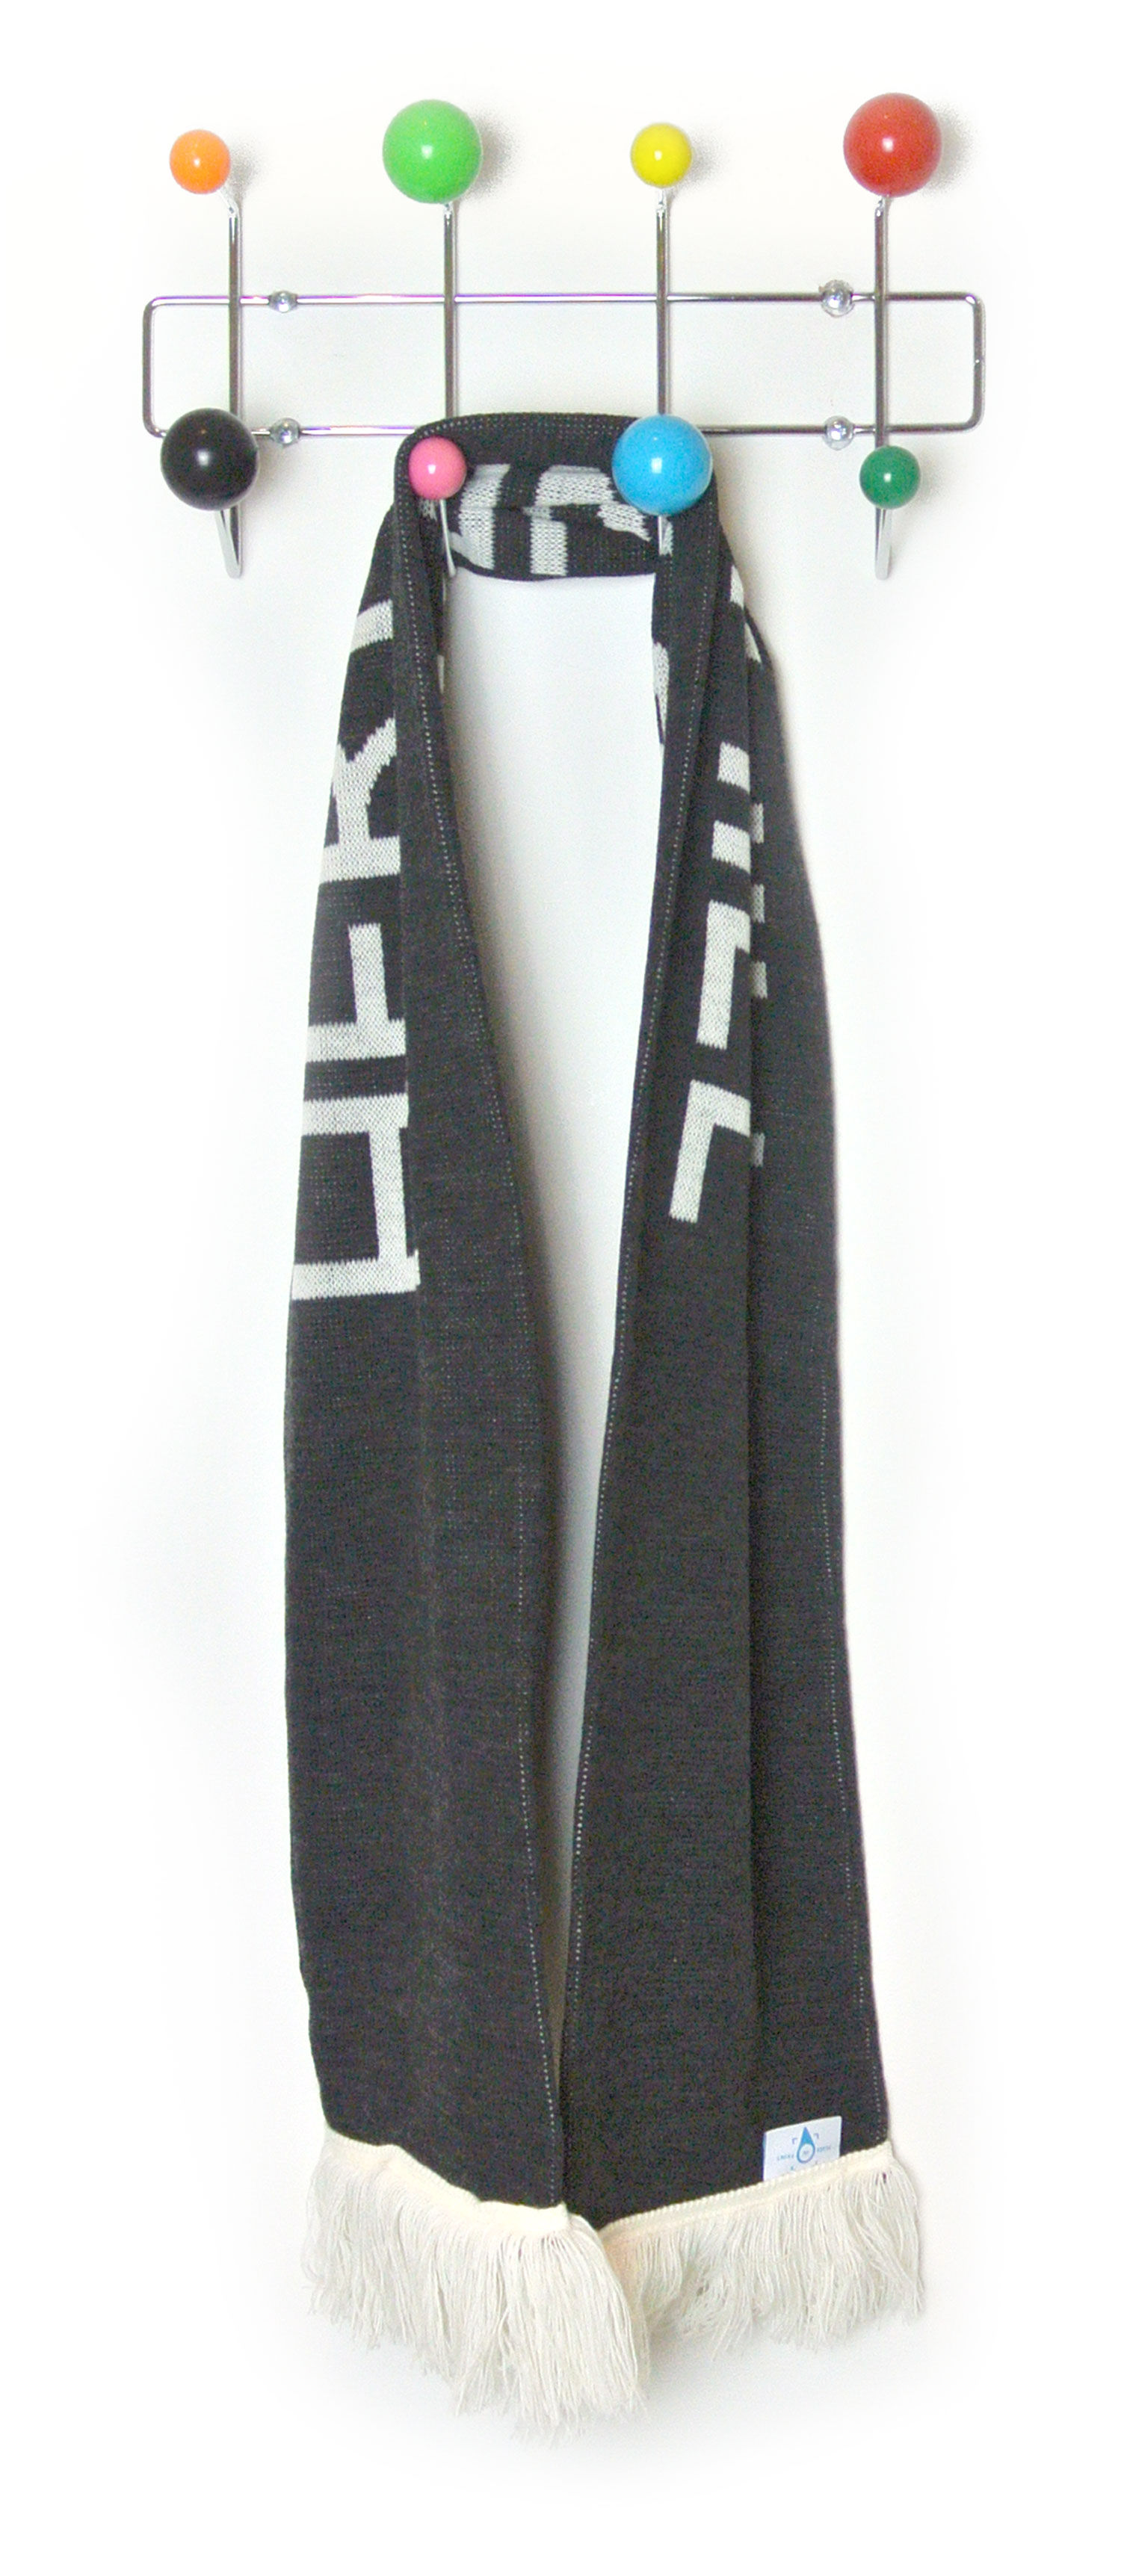 Place in Print Herne Hill Bus Destination Blind Scarf Hanging